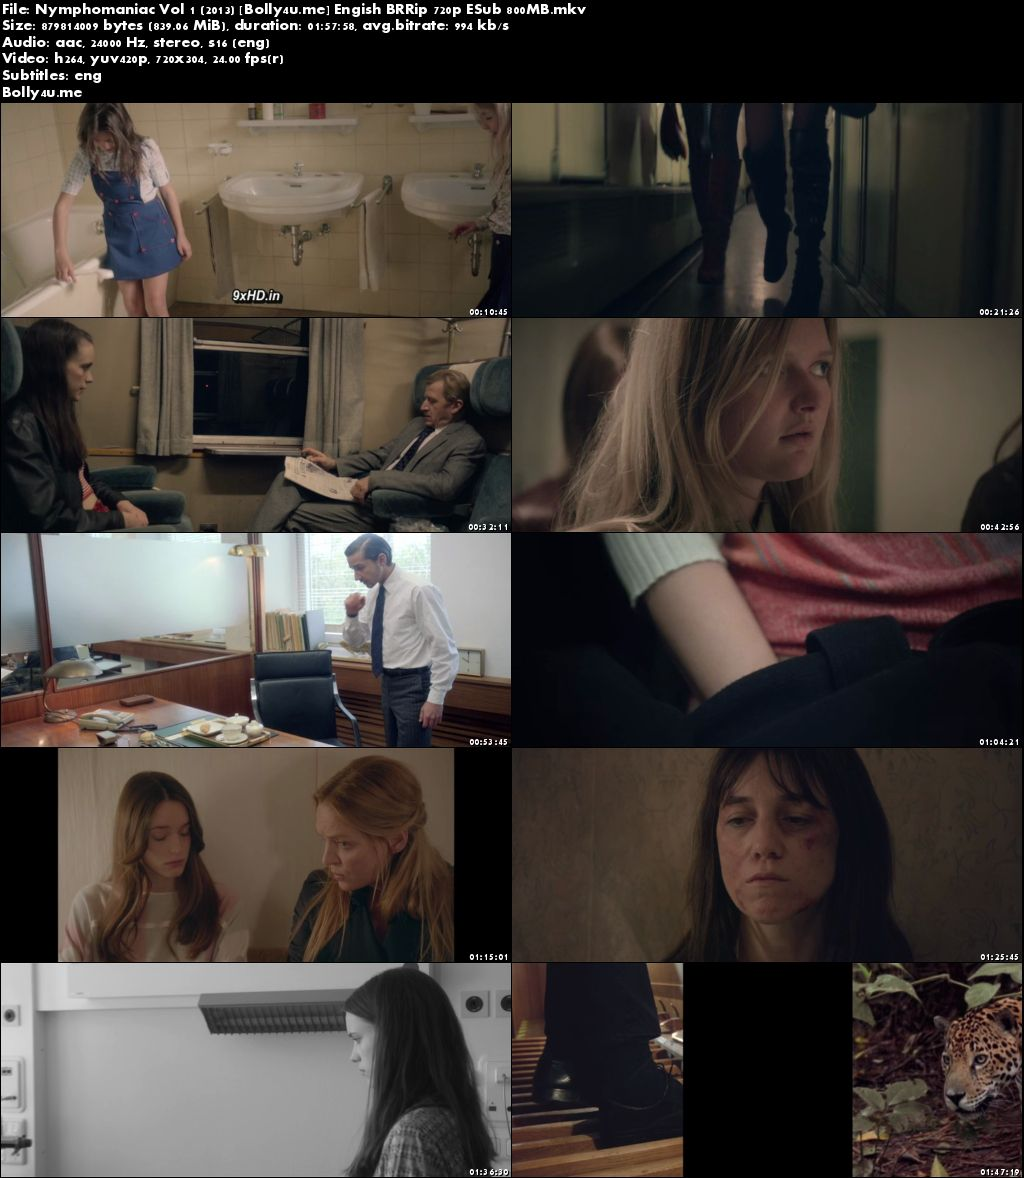 Nymphomaniac Vol 1 2013 BRRip 800MB Engish 720p ESub Download